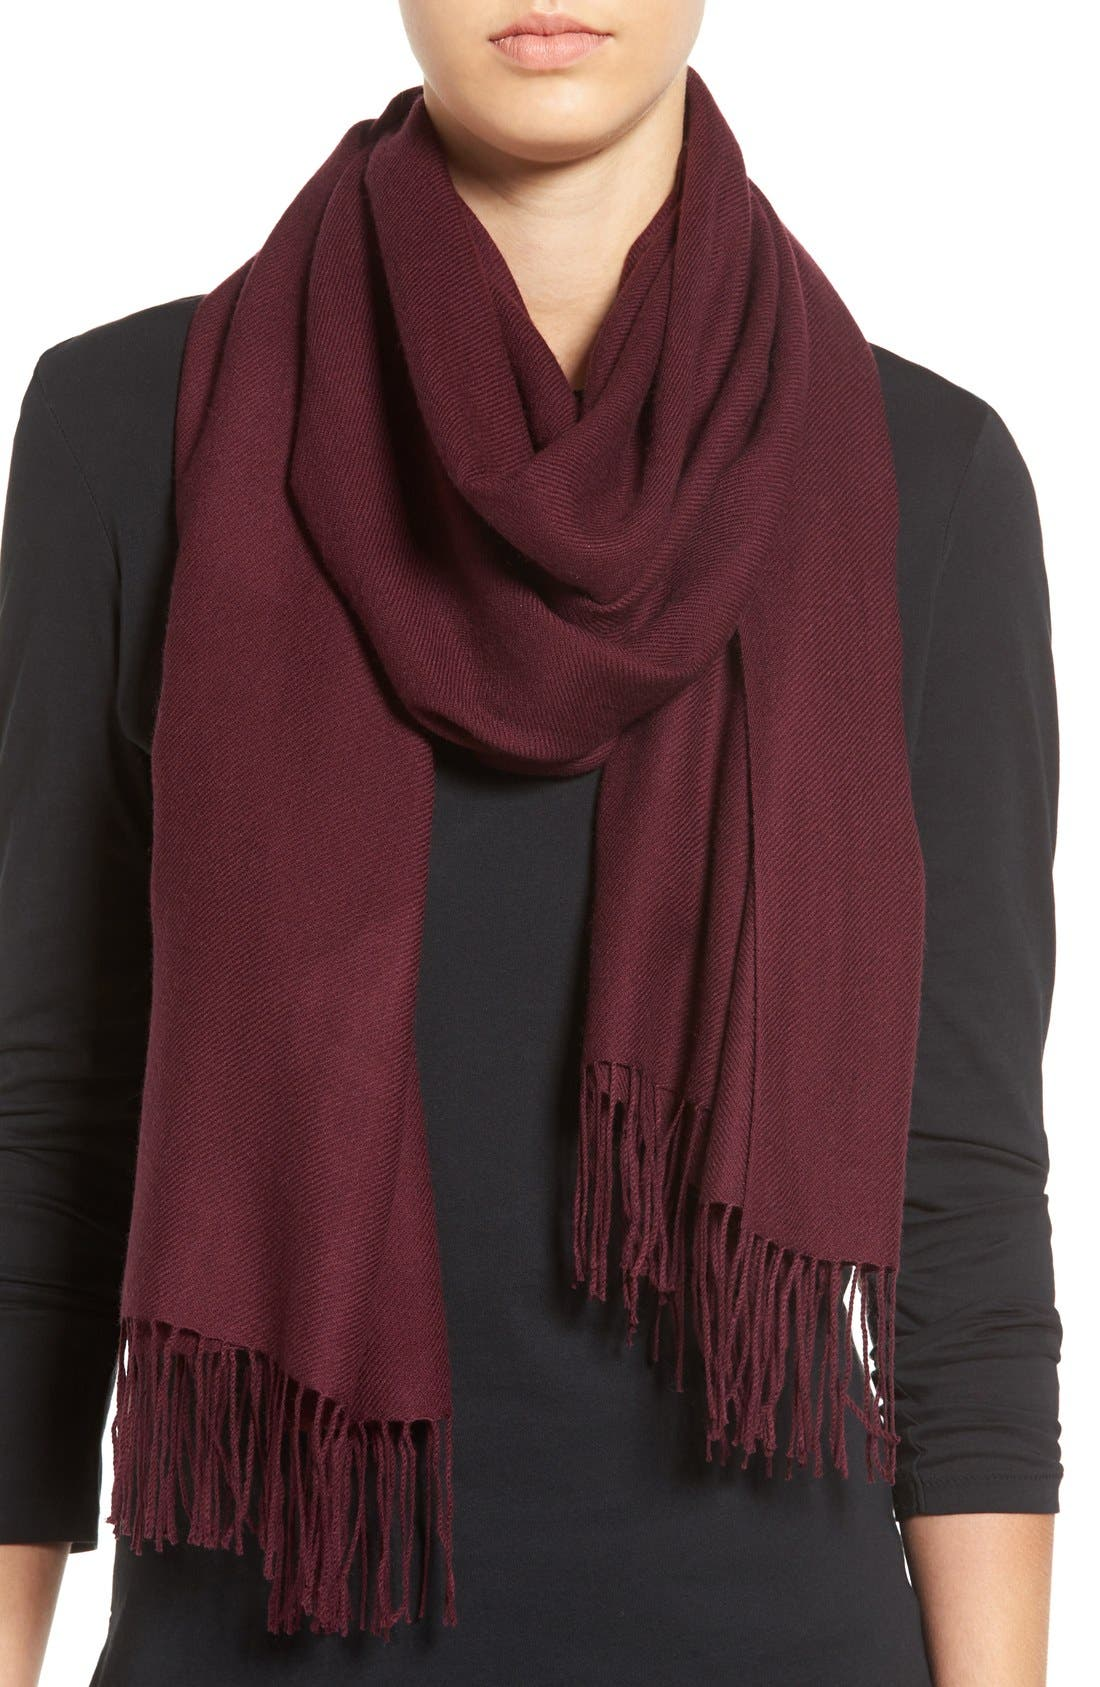 Tissue Weight Wool & Cashmere Scarf,                             Main thumbnail 70, color,